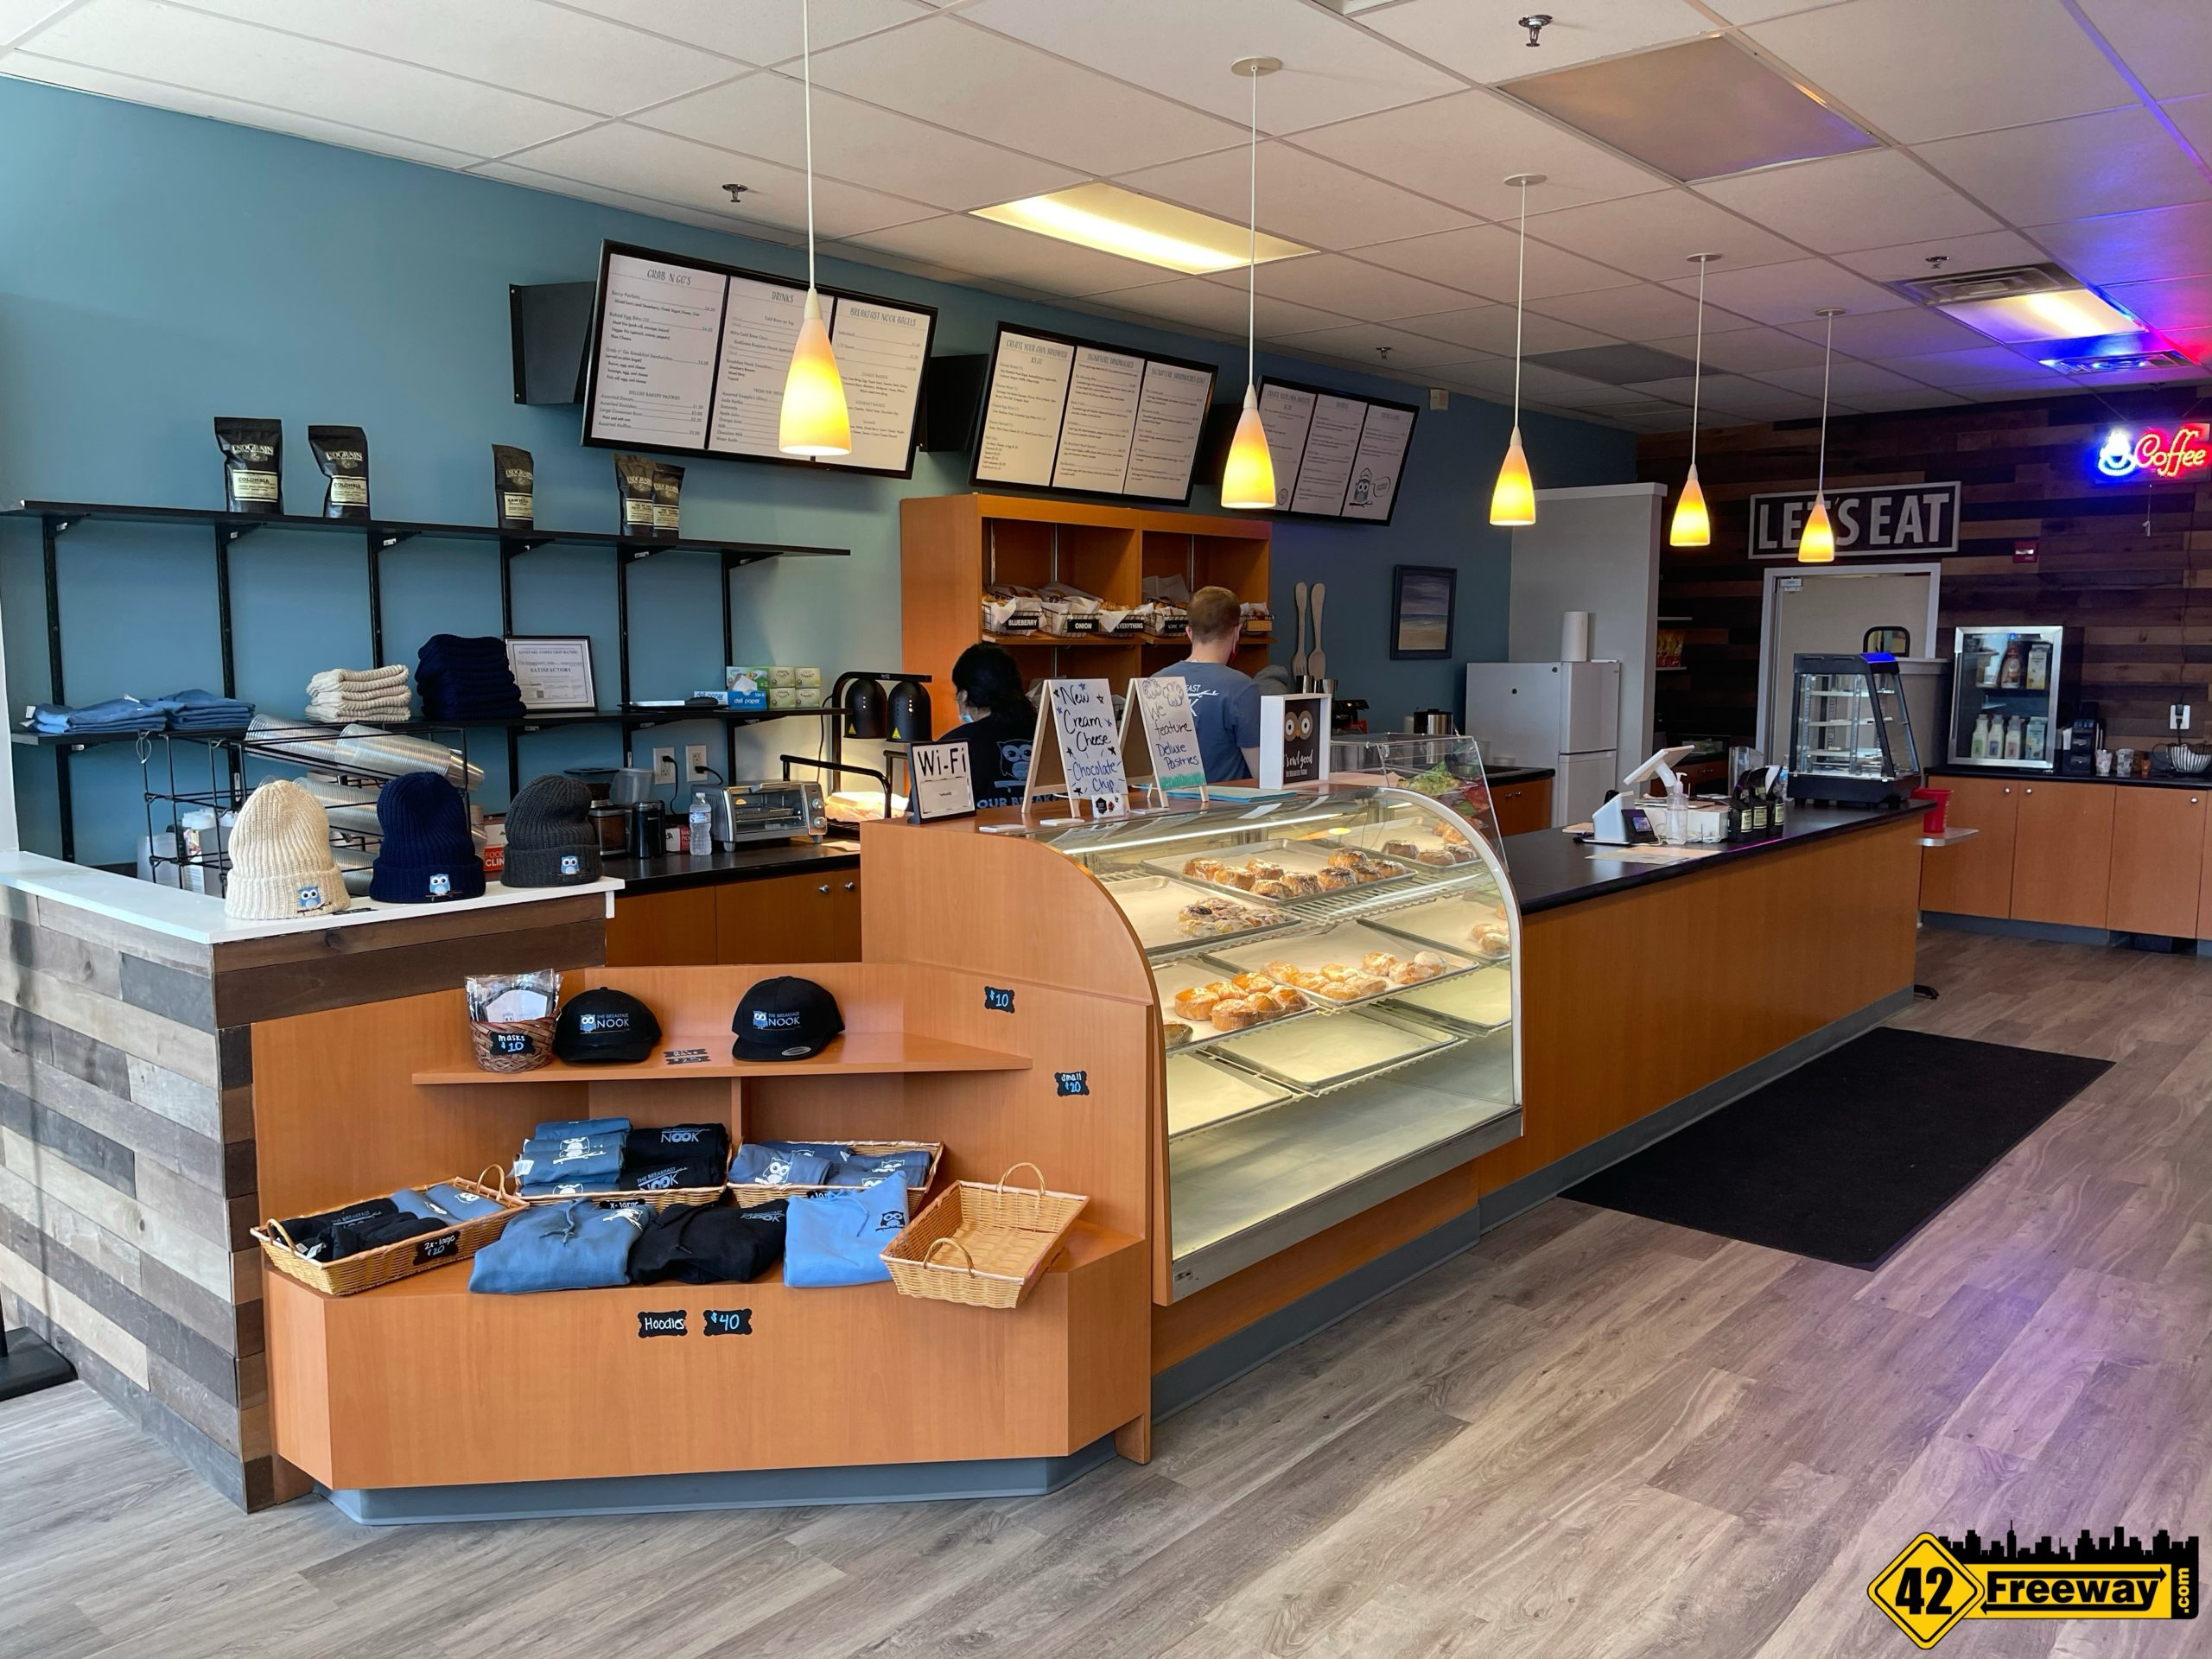 The Breakfast Nook Cross Keys Road is Open!  We Check Them Out!  Photos!